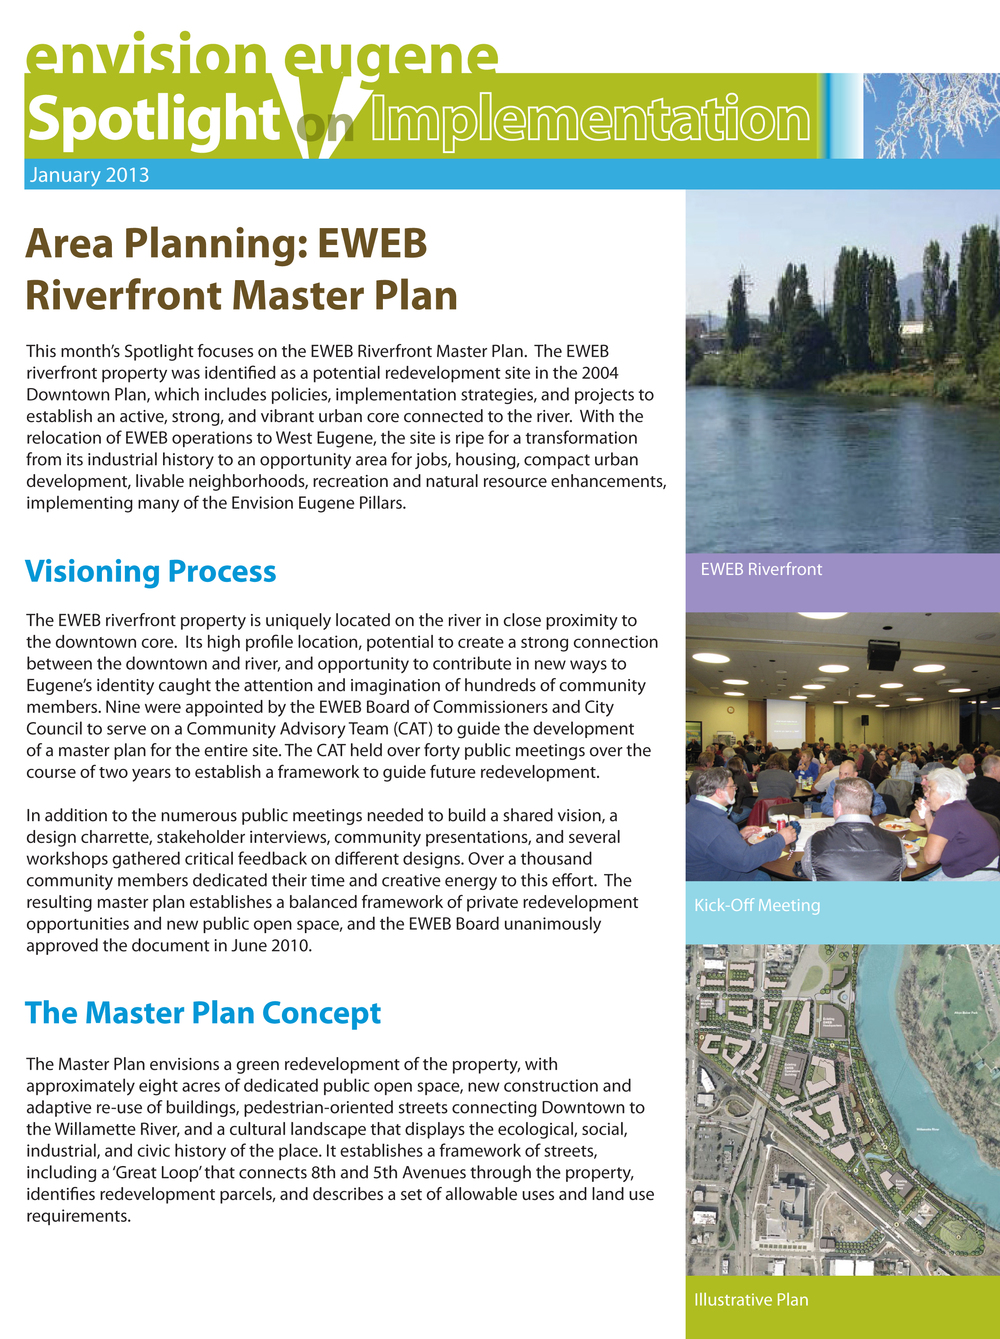 Envision Eugene Spotlight January 2013 FINAL-1.jpg